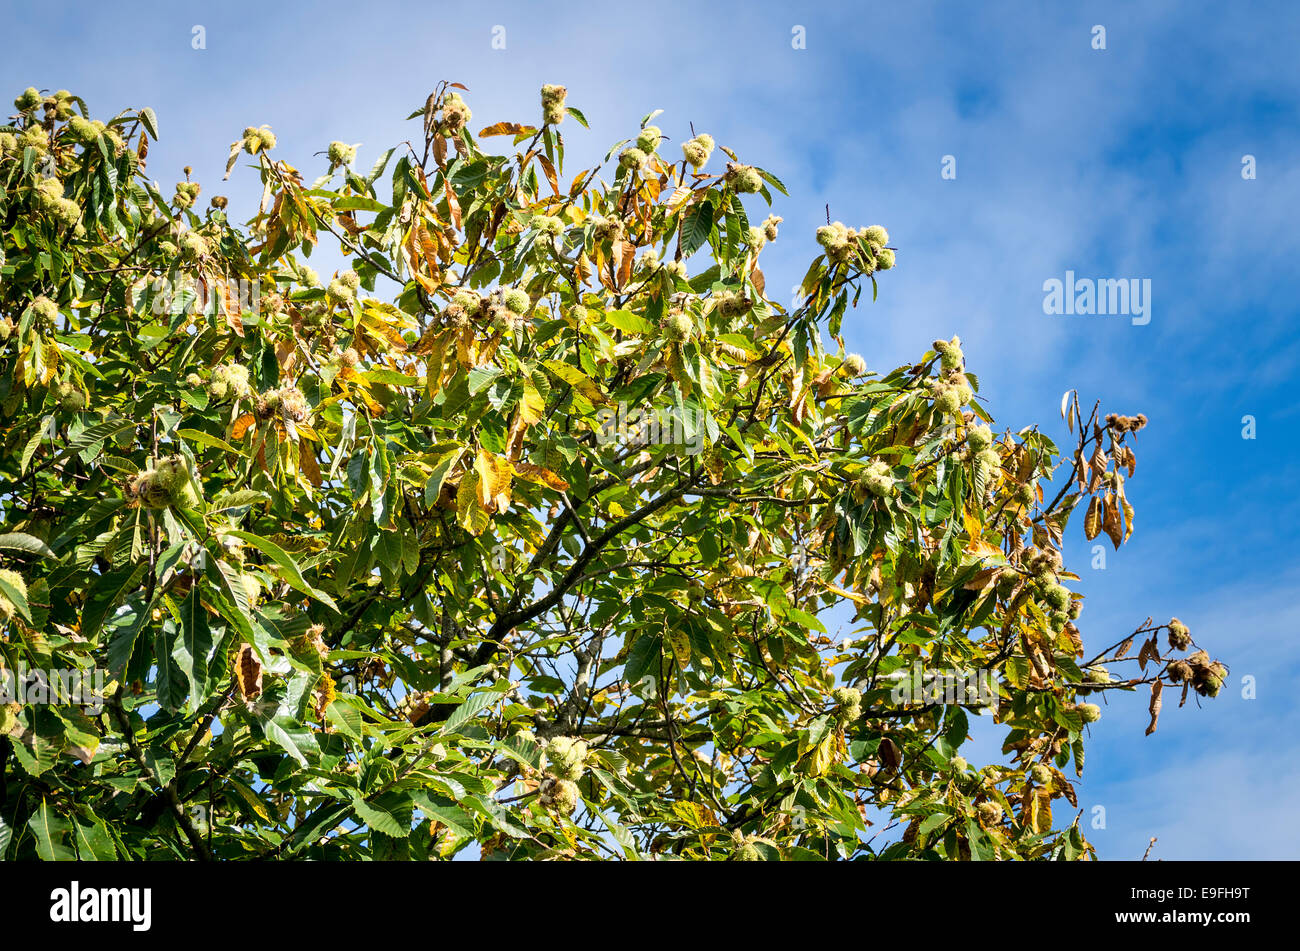 Sweet chestnut tree with ripe nuts in October Stock Photo